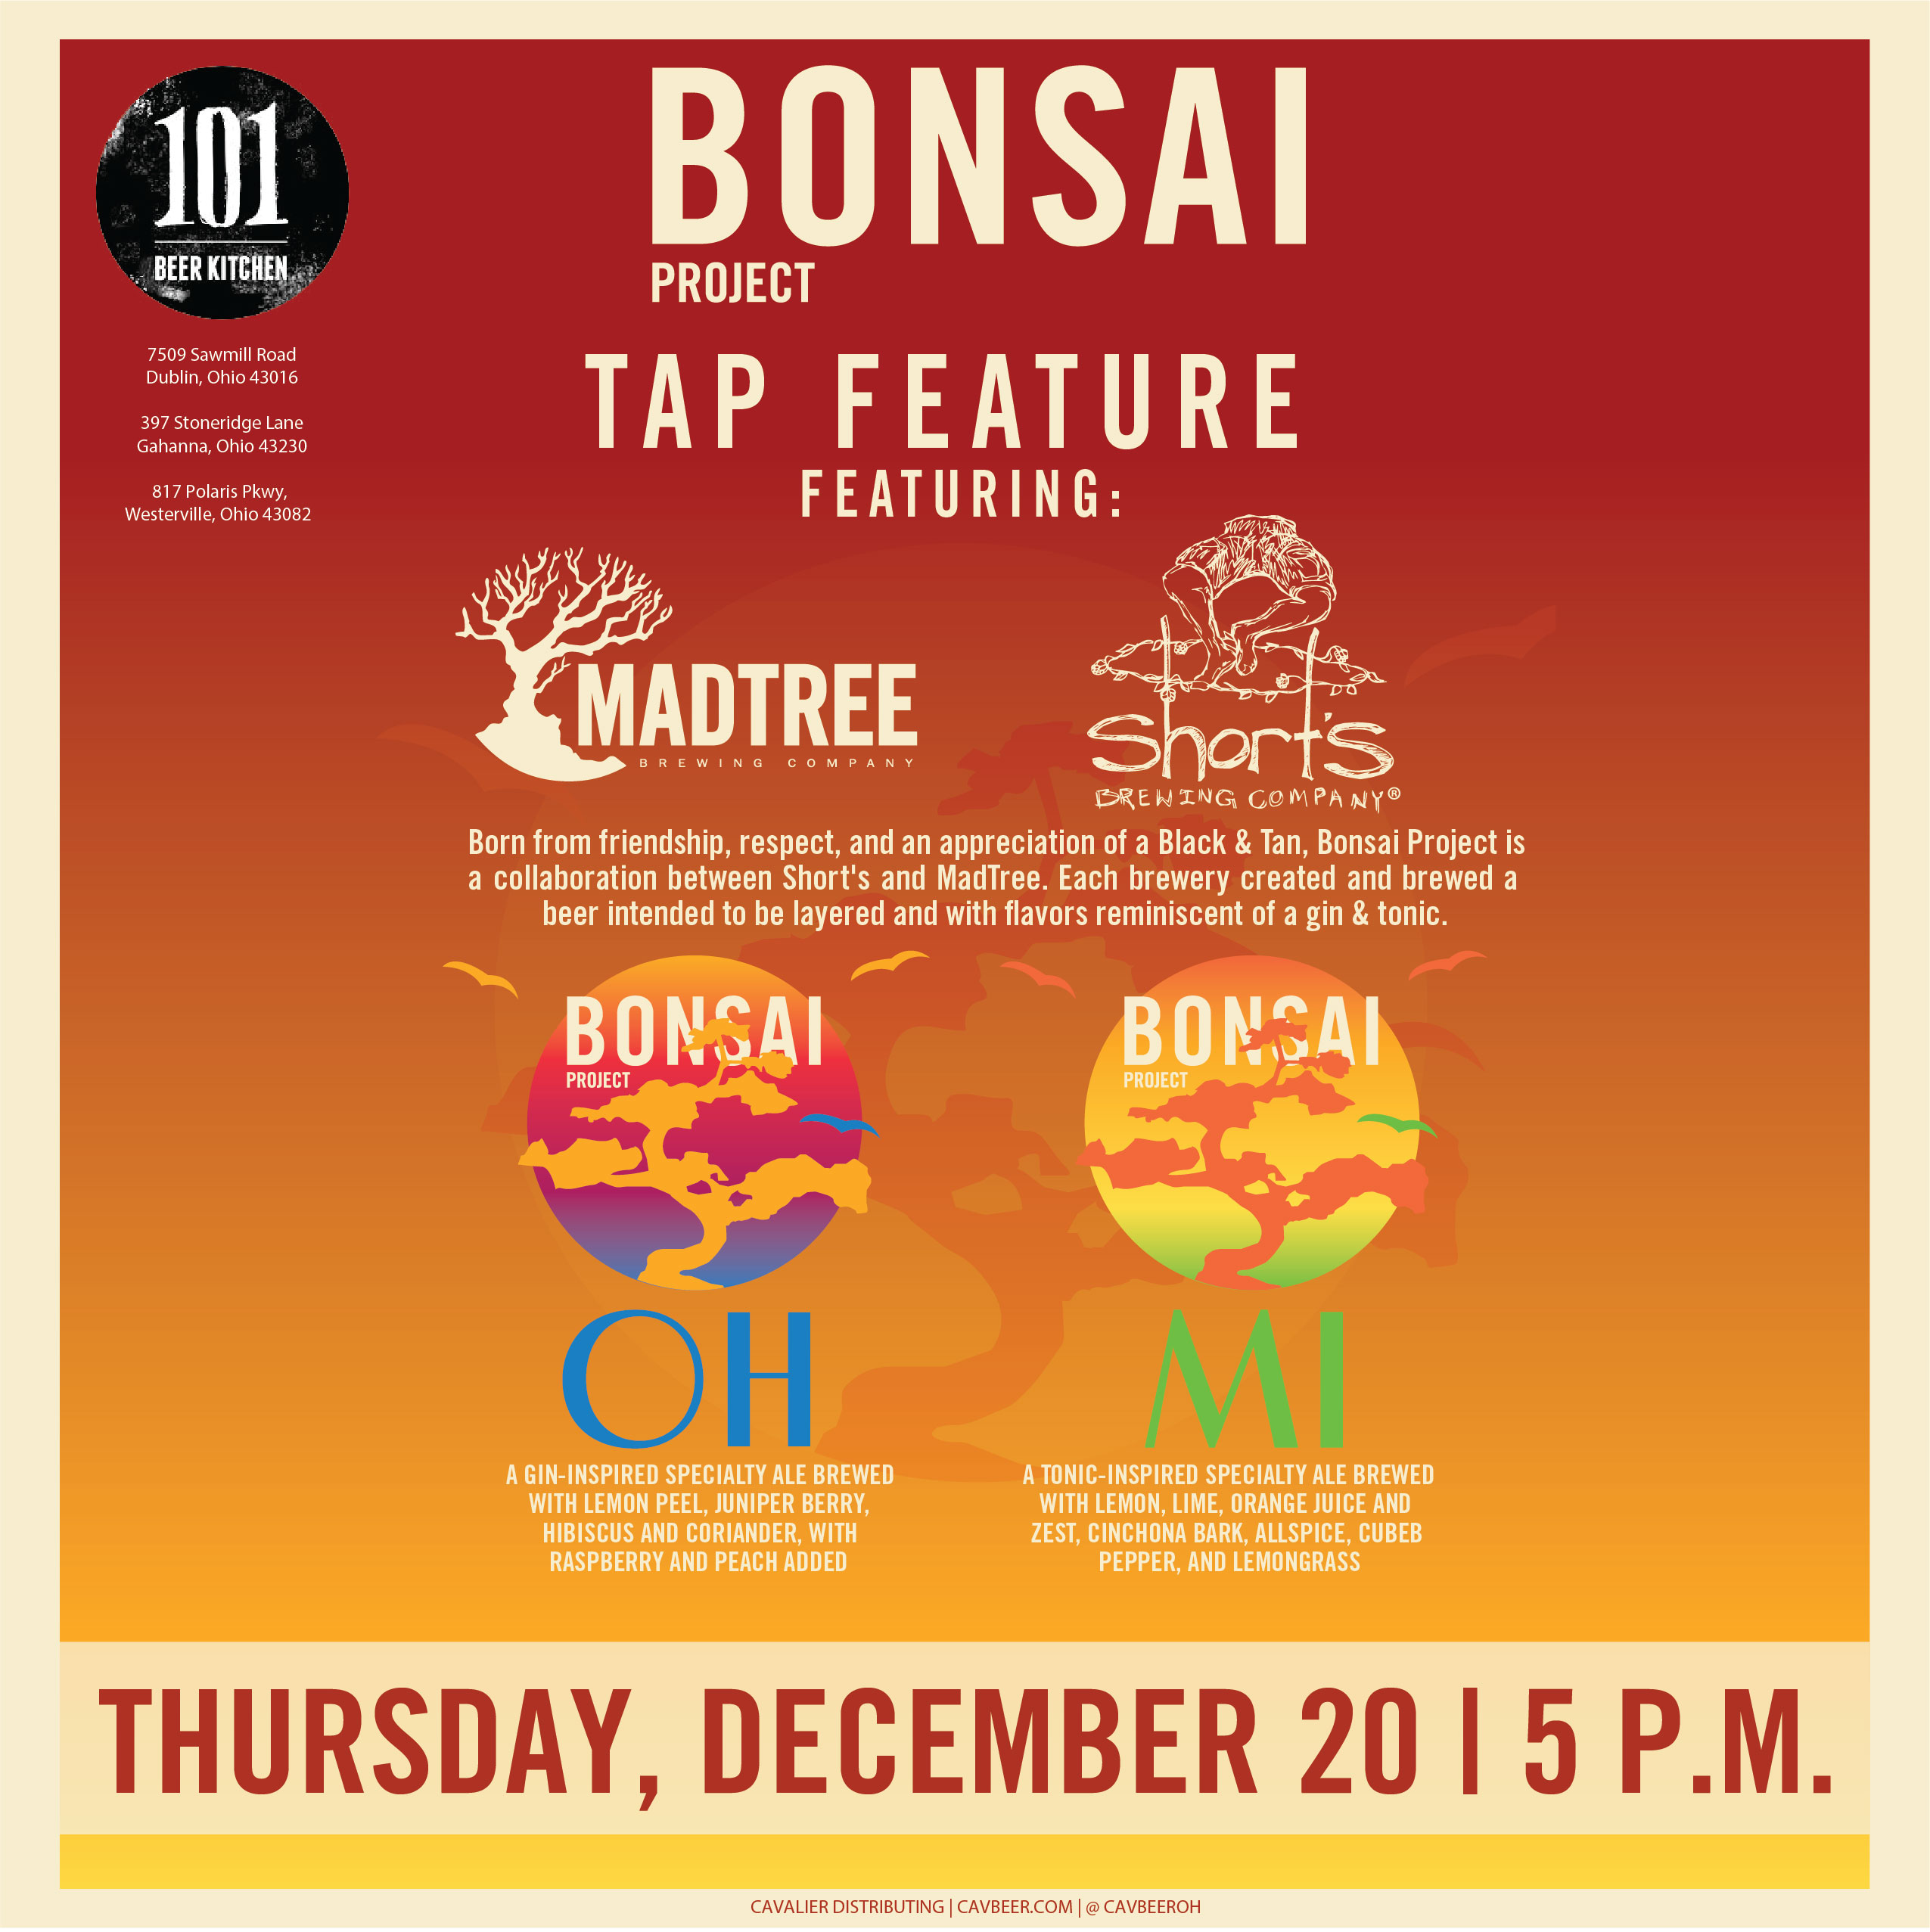 MadTree & Short's Bonsai Project @ 101 Beer Kitchen